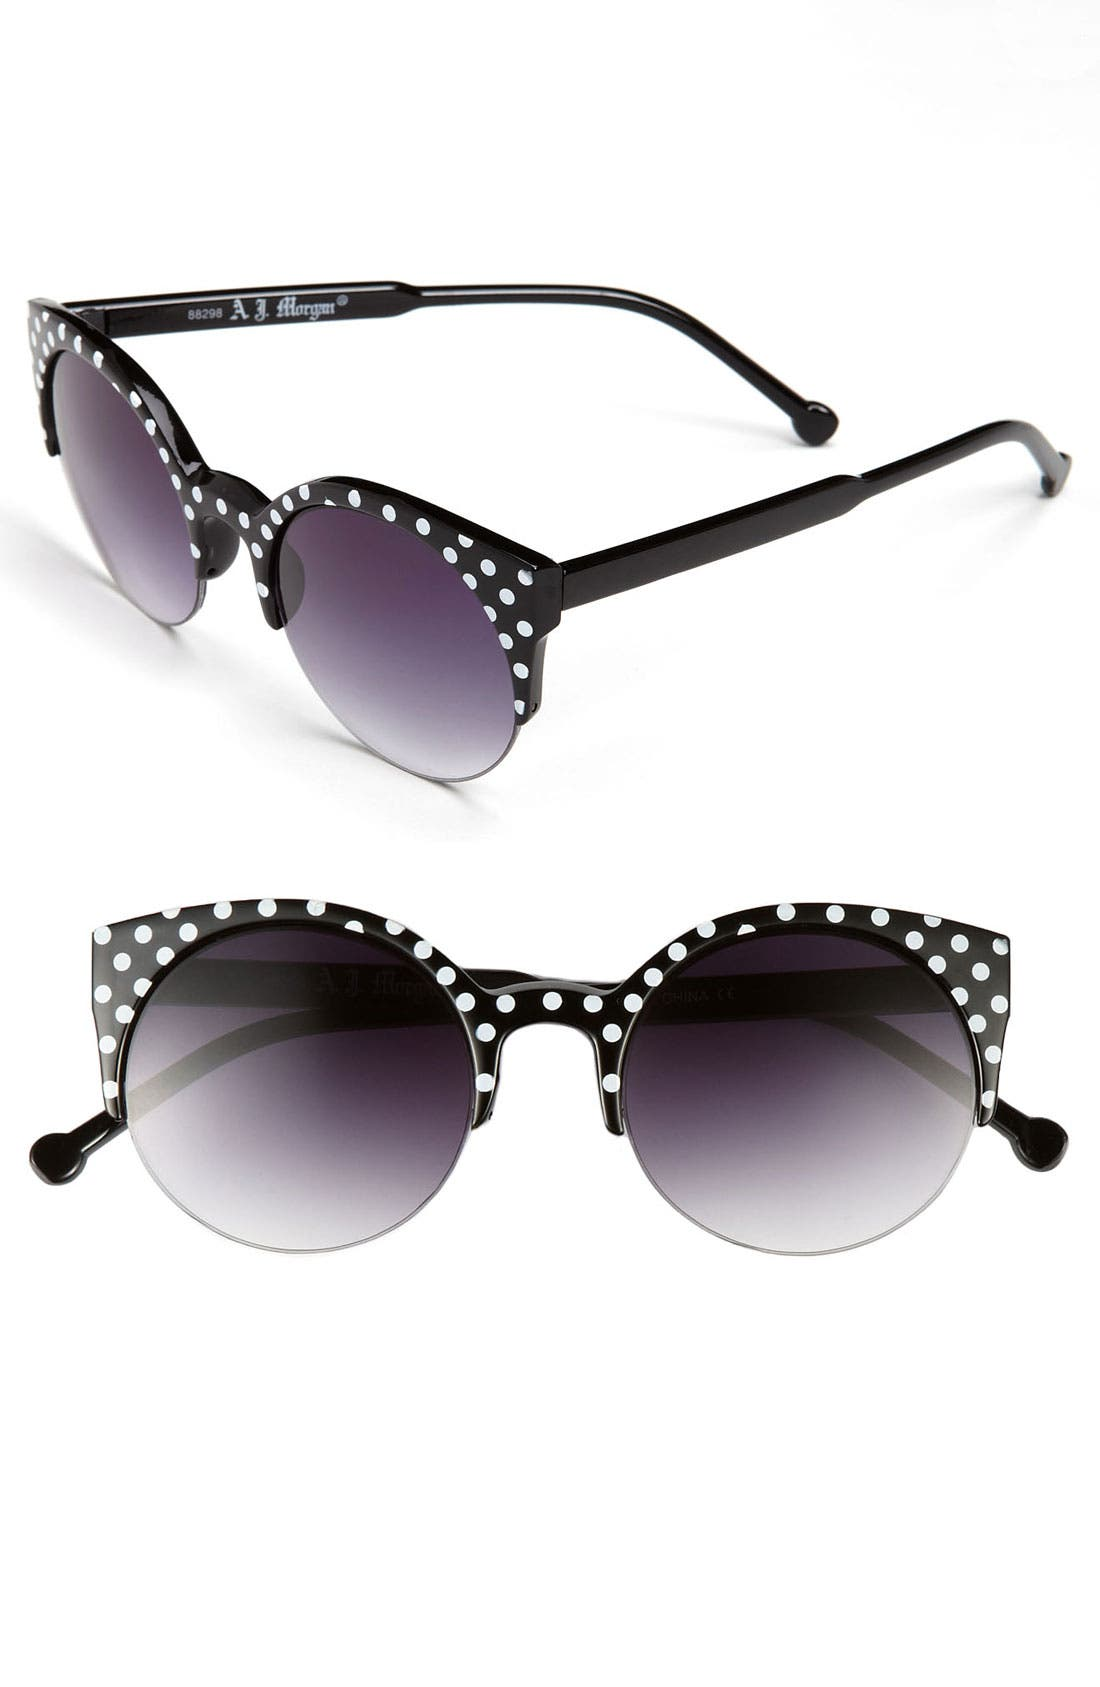 Main Image - A.J. Morgan 52mm Retro Sunglasses